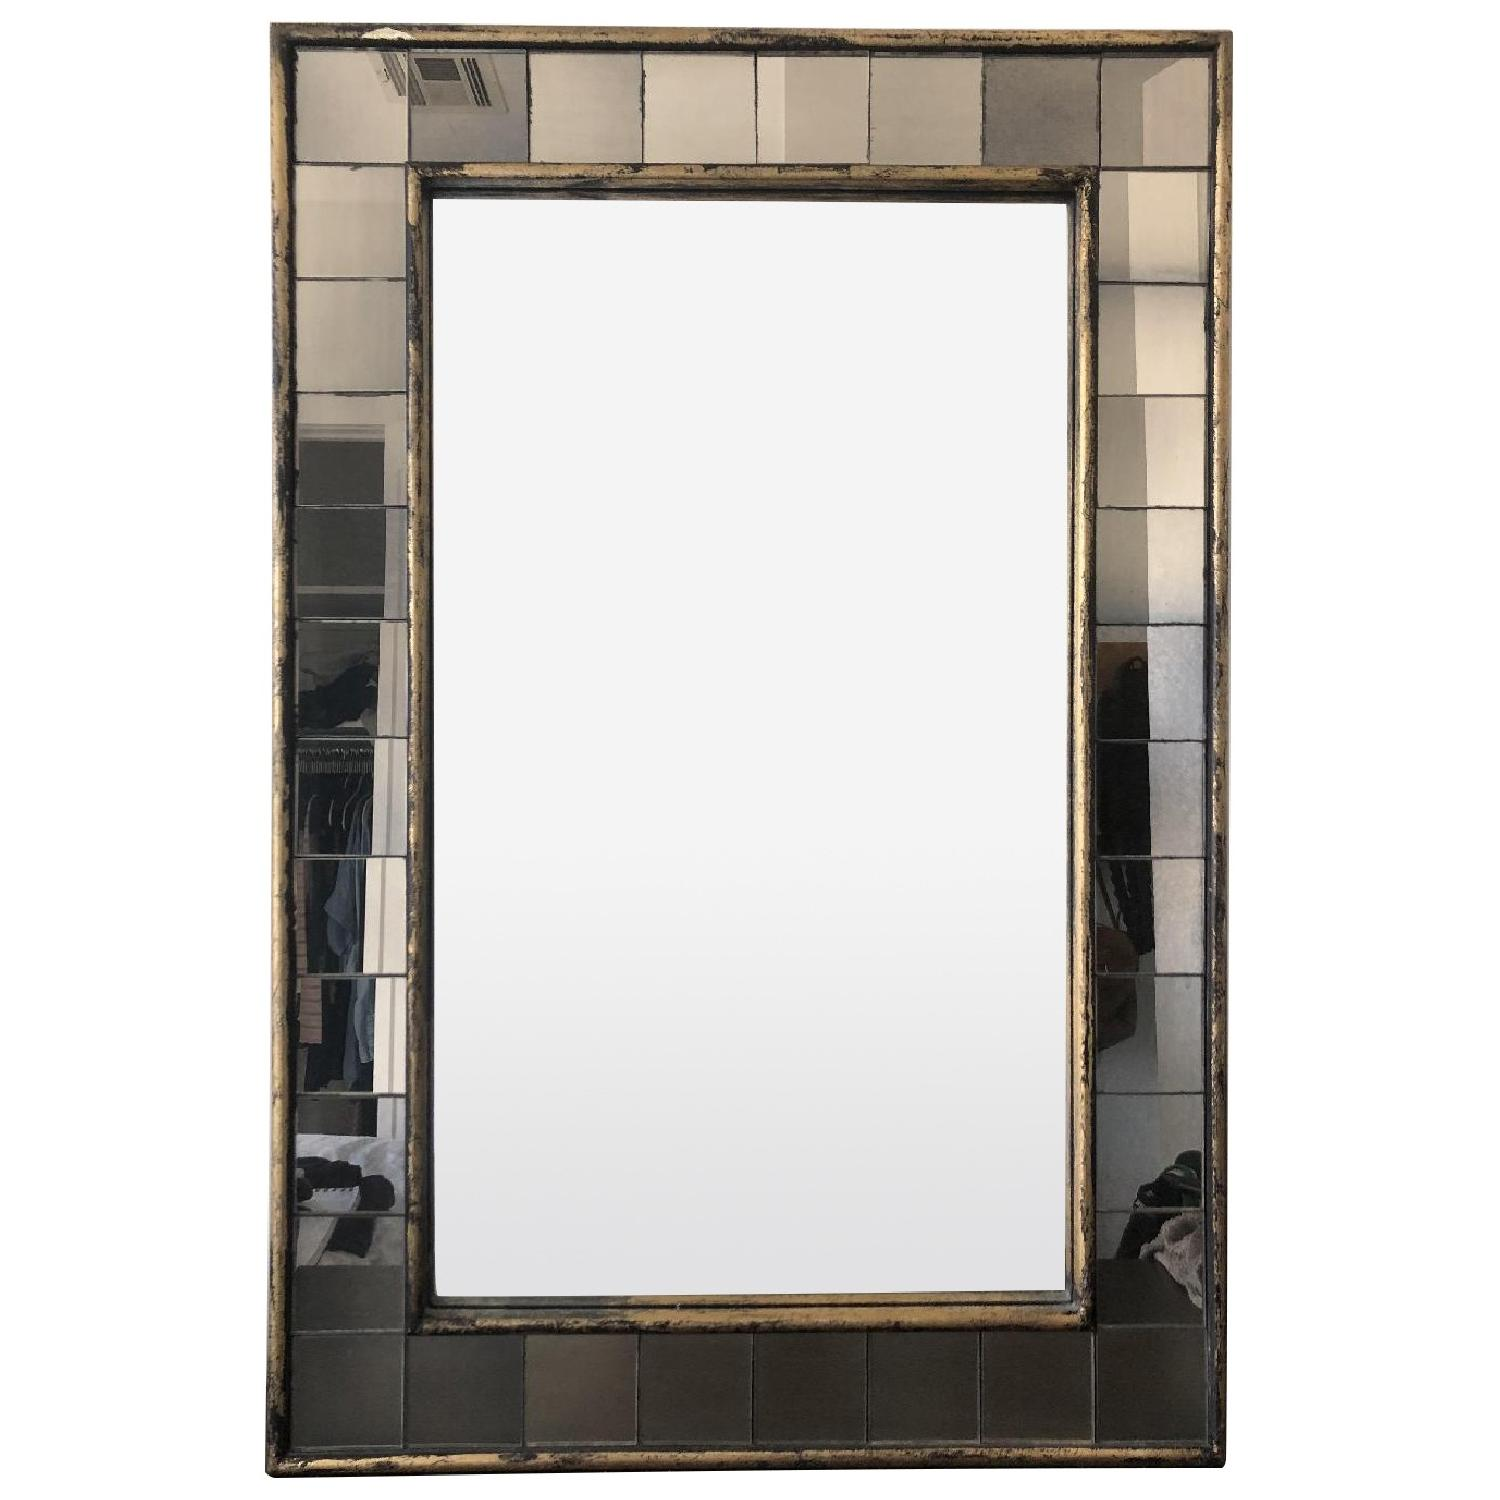 West Elm Antique Tiled Wall Mirror - image-0